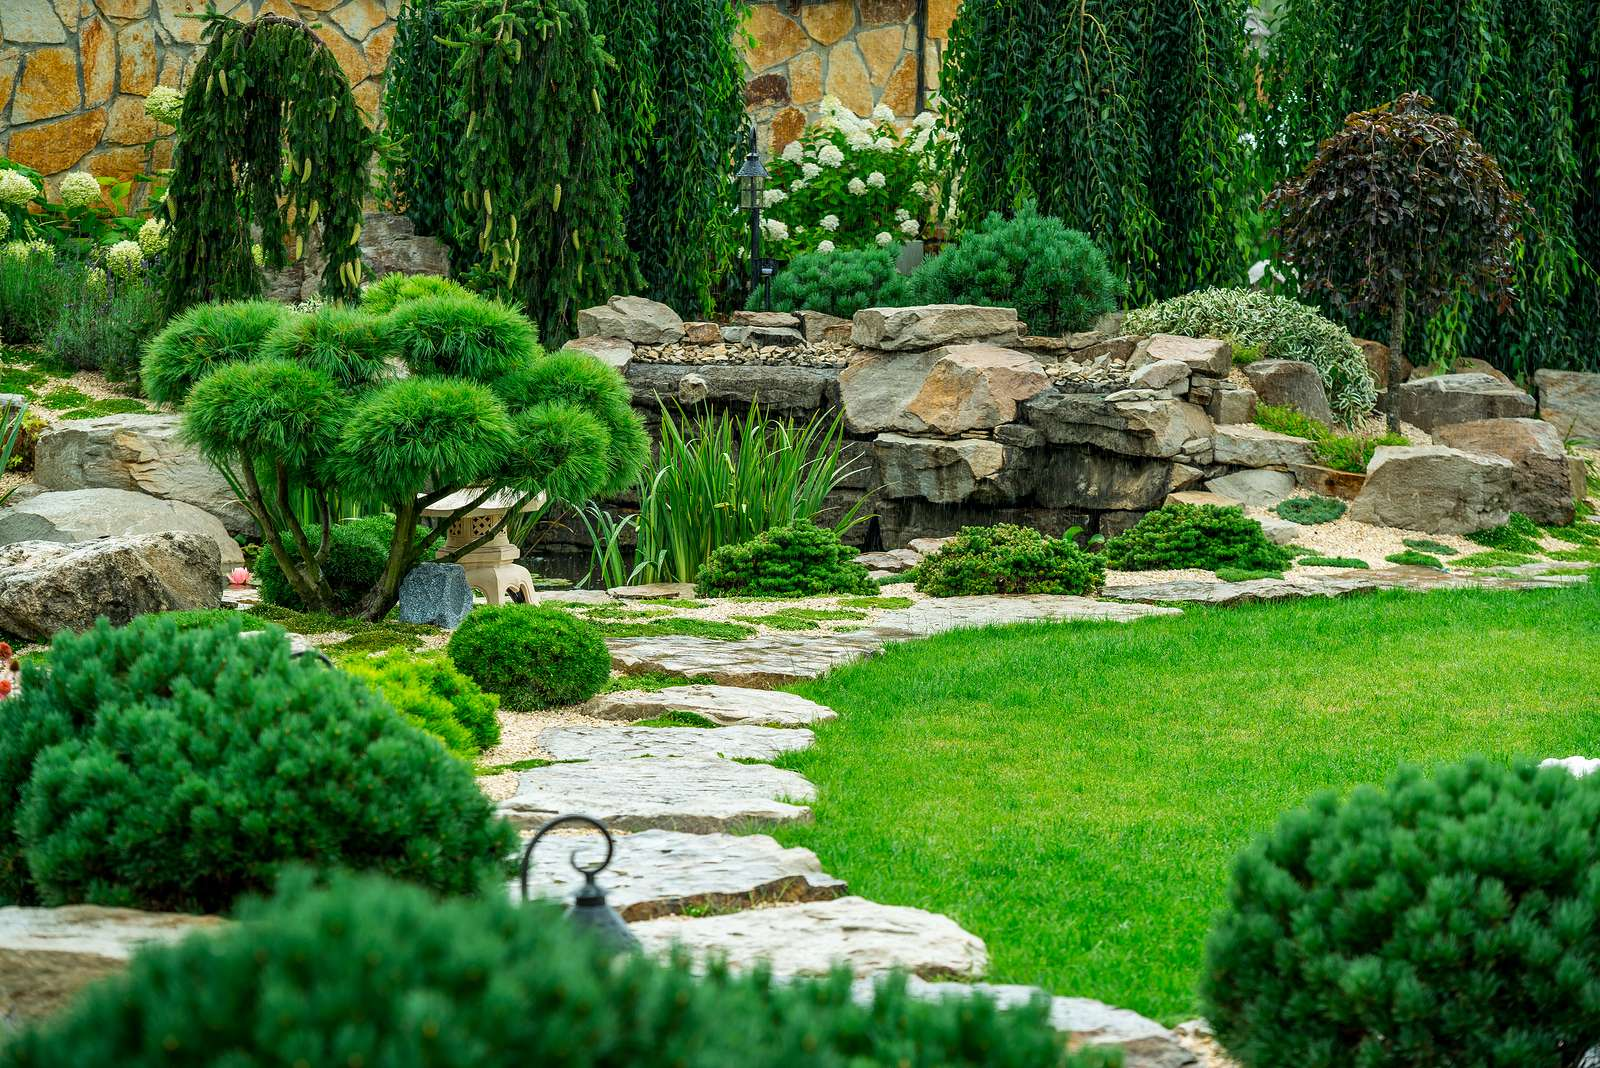 Who Offers Yard Services in the Draper, UT Area?